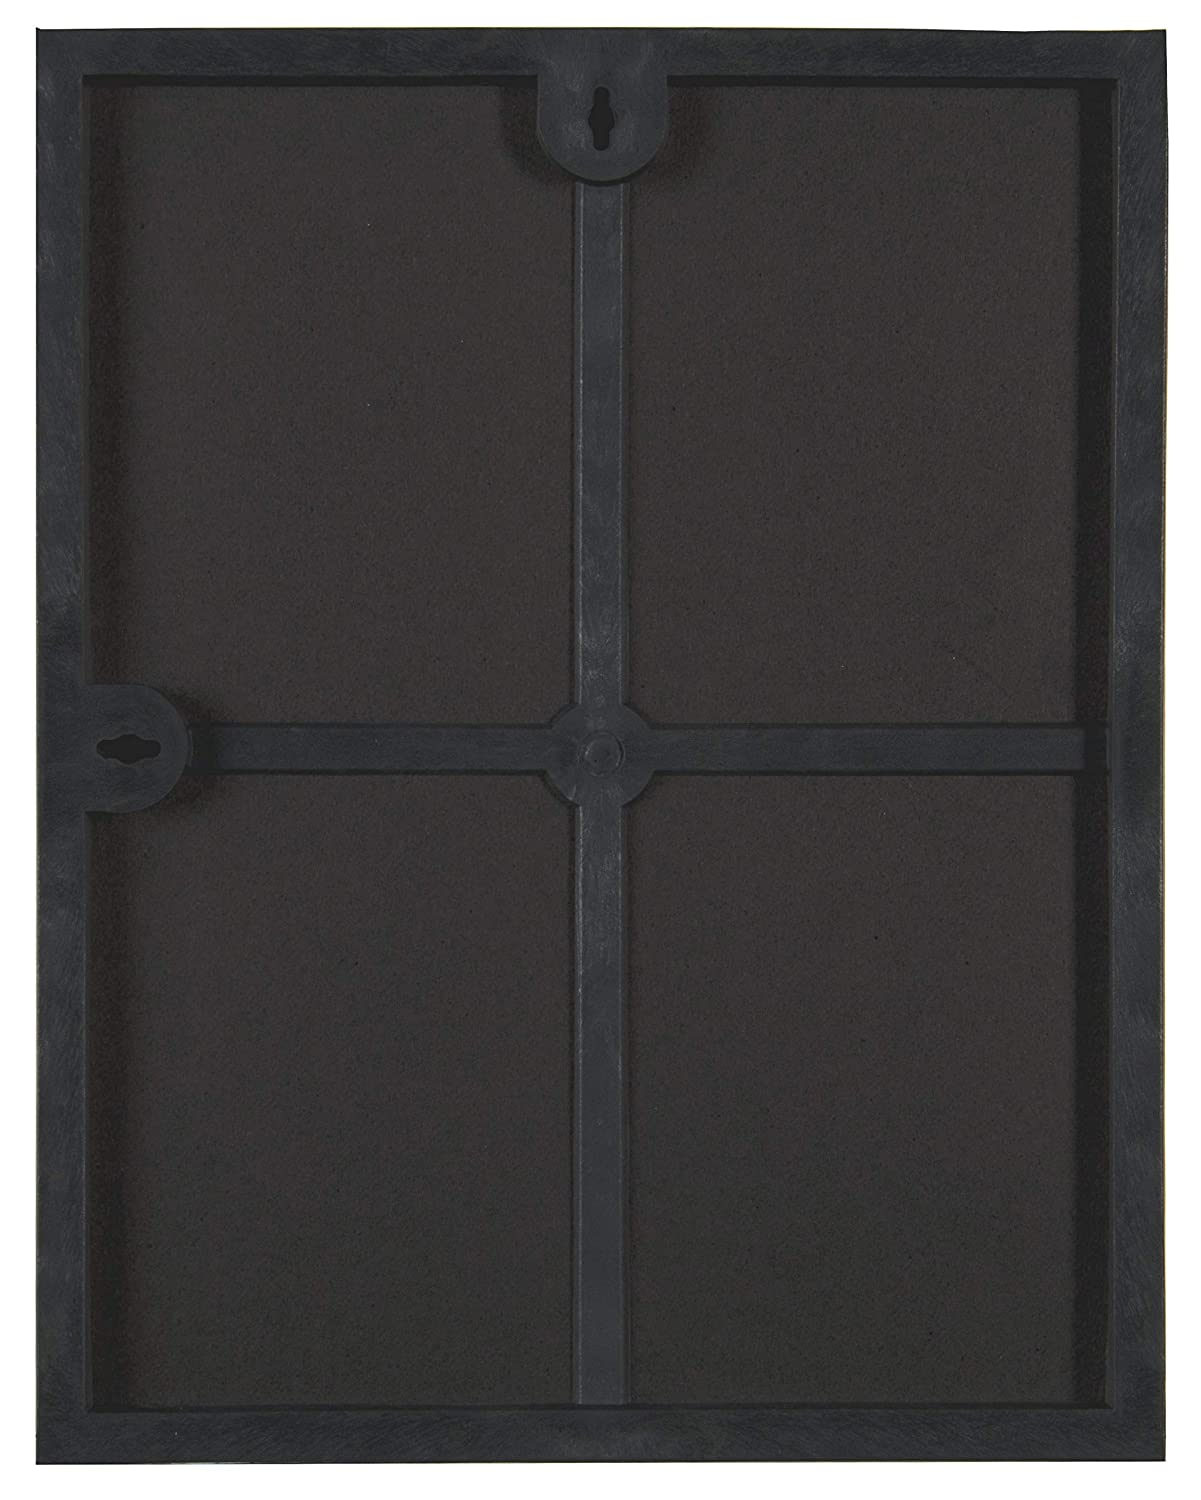 Amazon.com - Snap 11x14 Front Loading Narrow Photo Frame with Black Mat For 8x10, For Wall or Tabletop Display - Luxury Frames